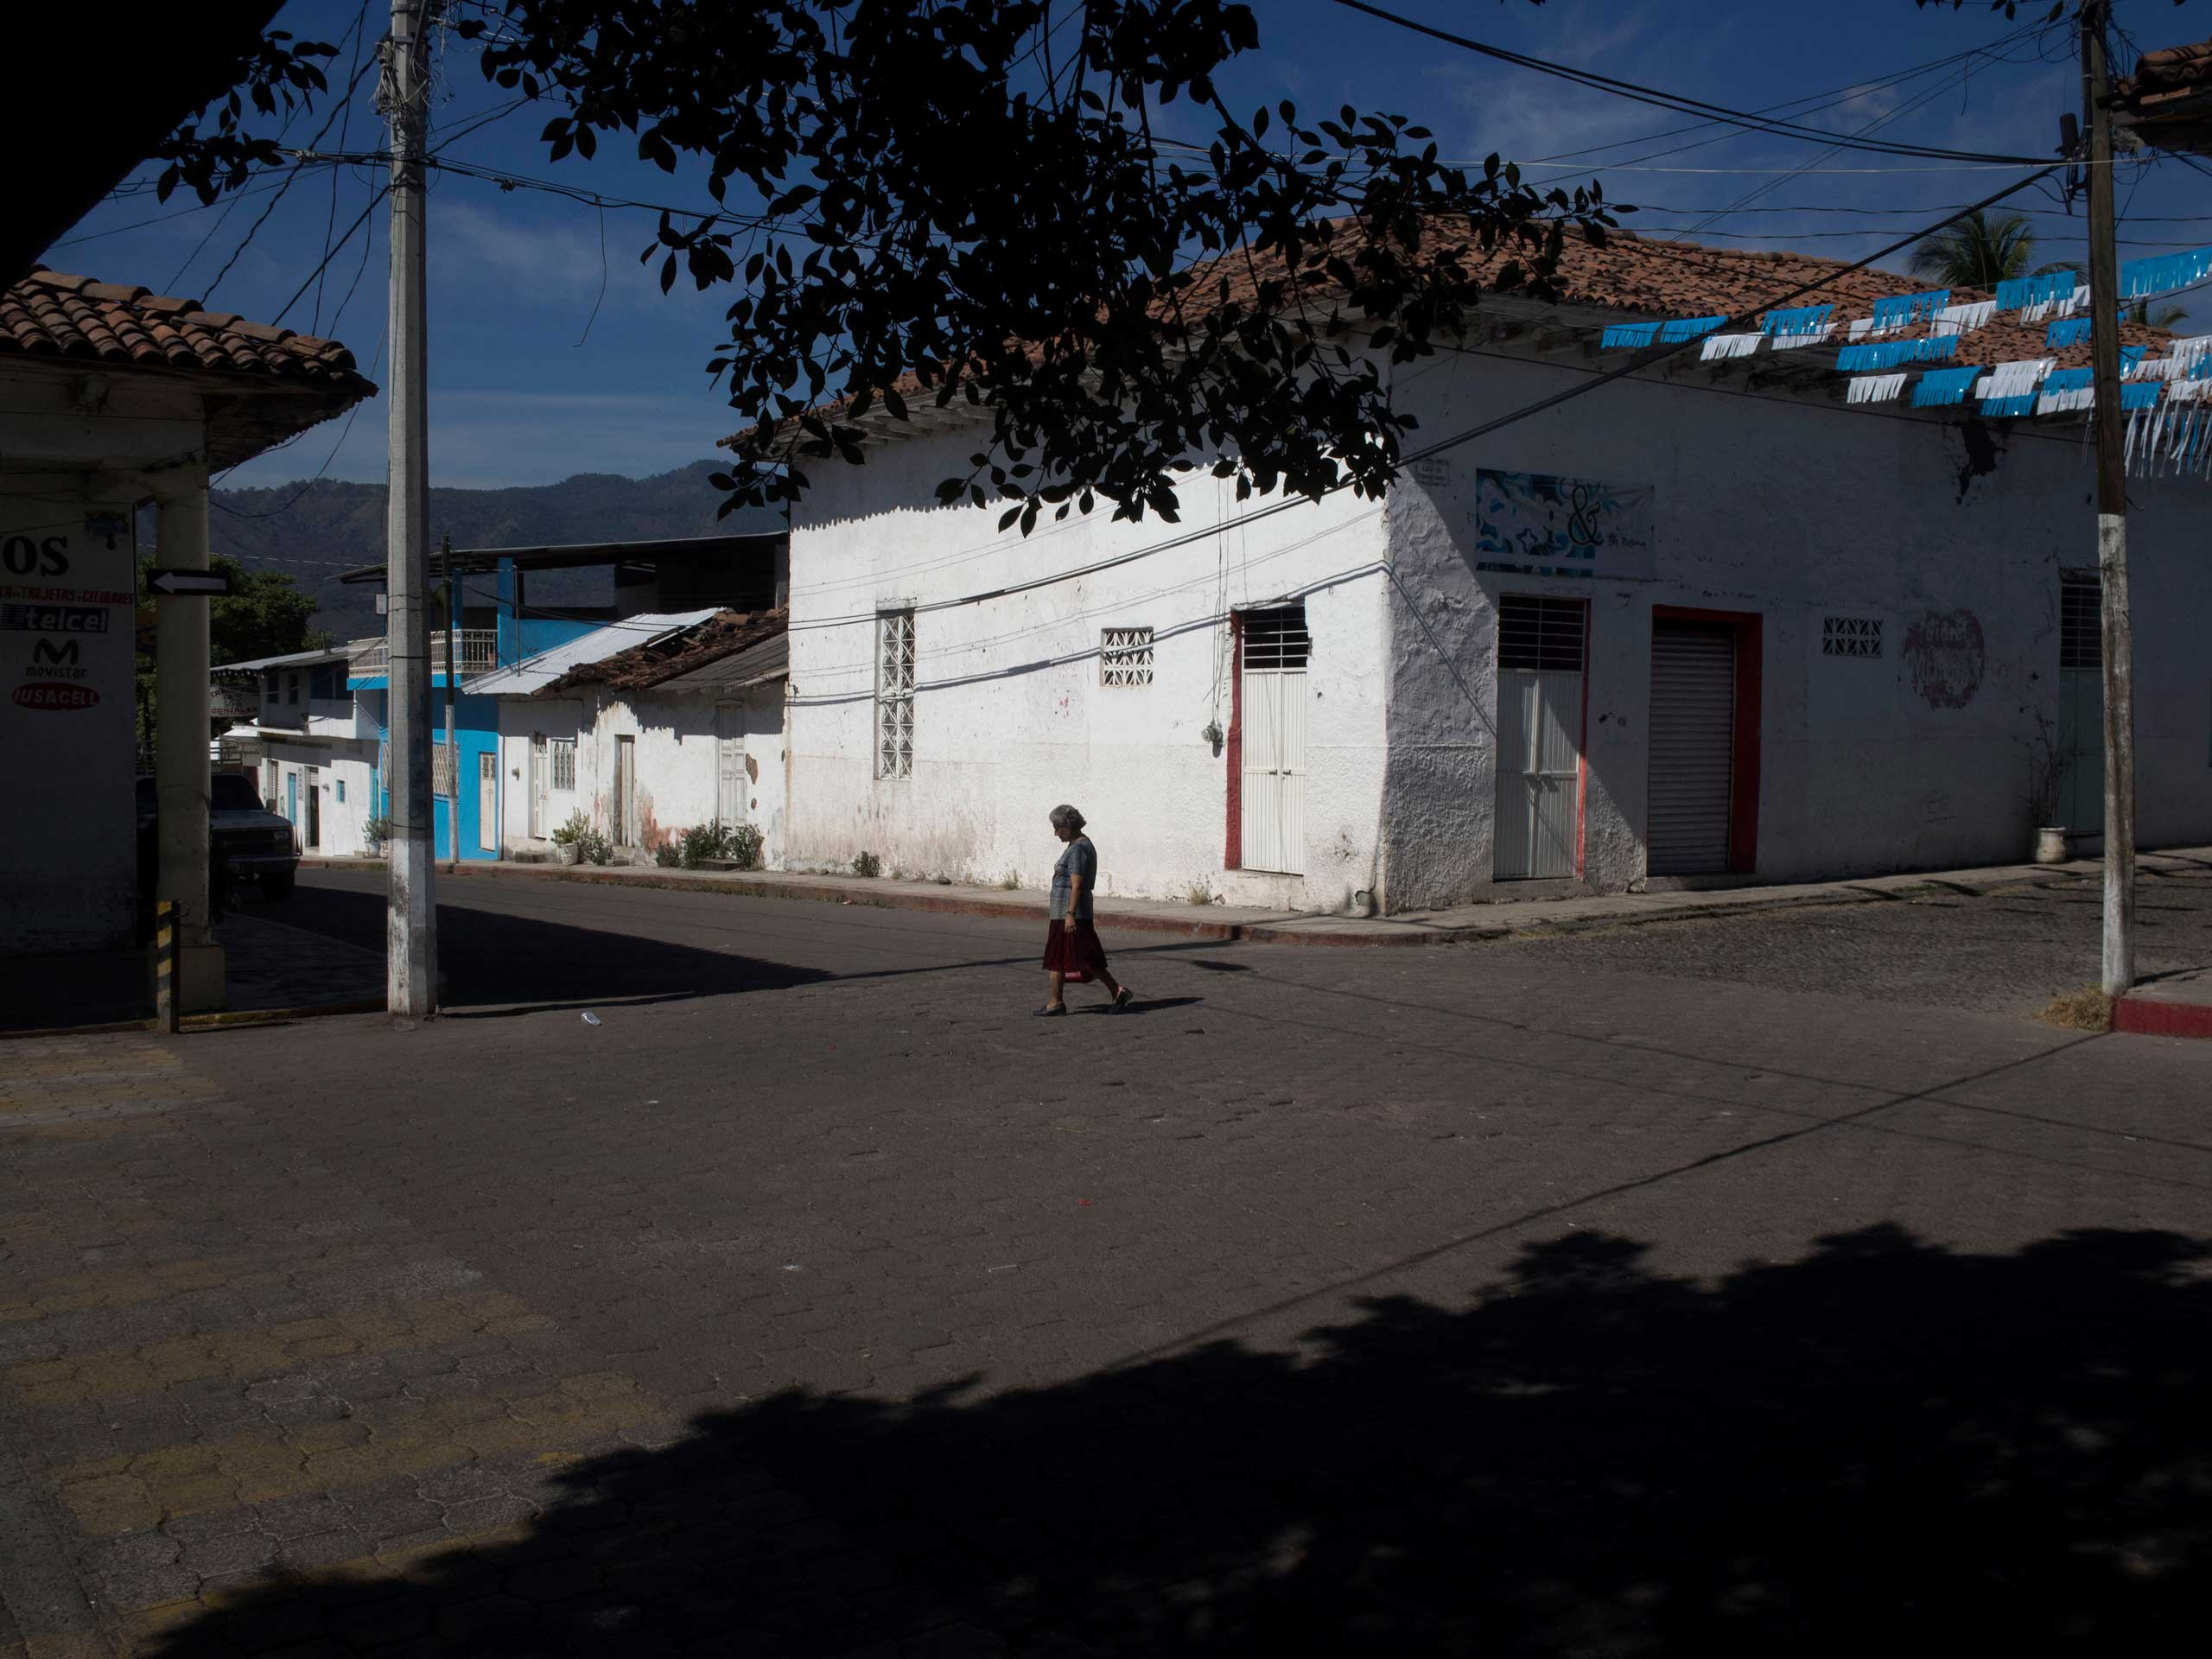 Jan. 5, 2014. Downtown Paracuaro, Michoac‡n, appears deserted after vigilantes arrive.